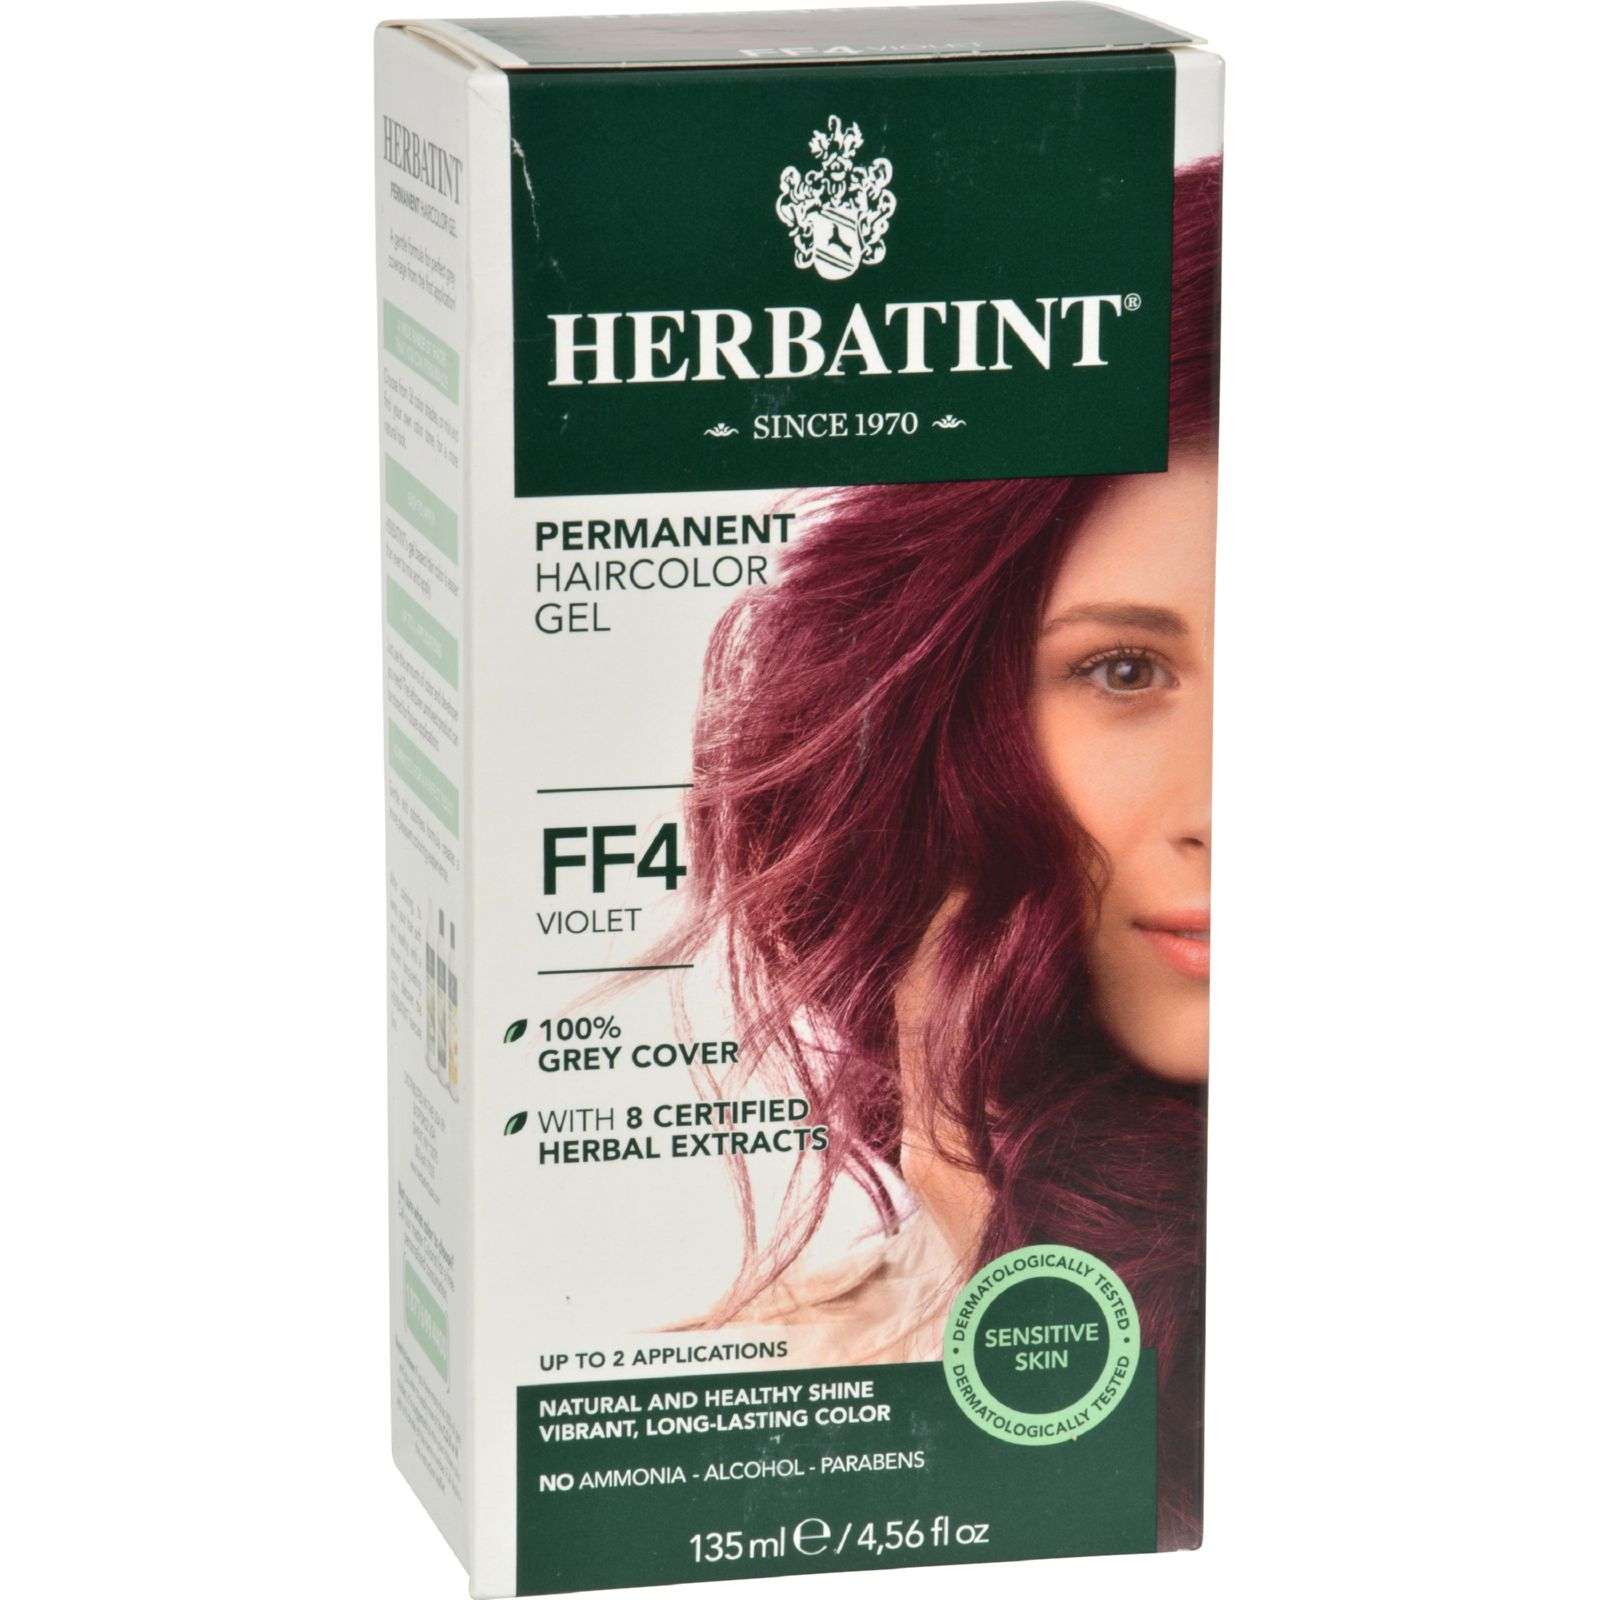 Bioforce Herbatint Flash Fashion Permanent Herbal Haircolor Gel, 4.56 oz